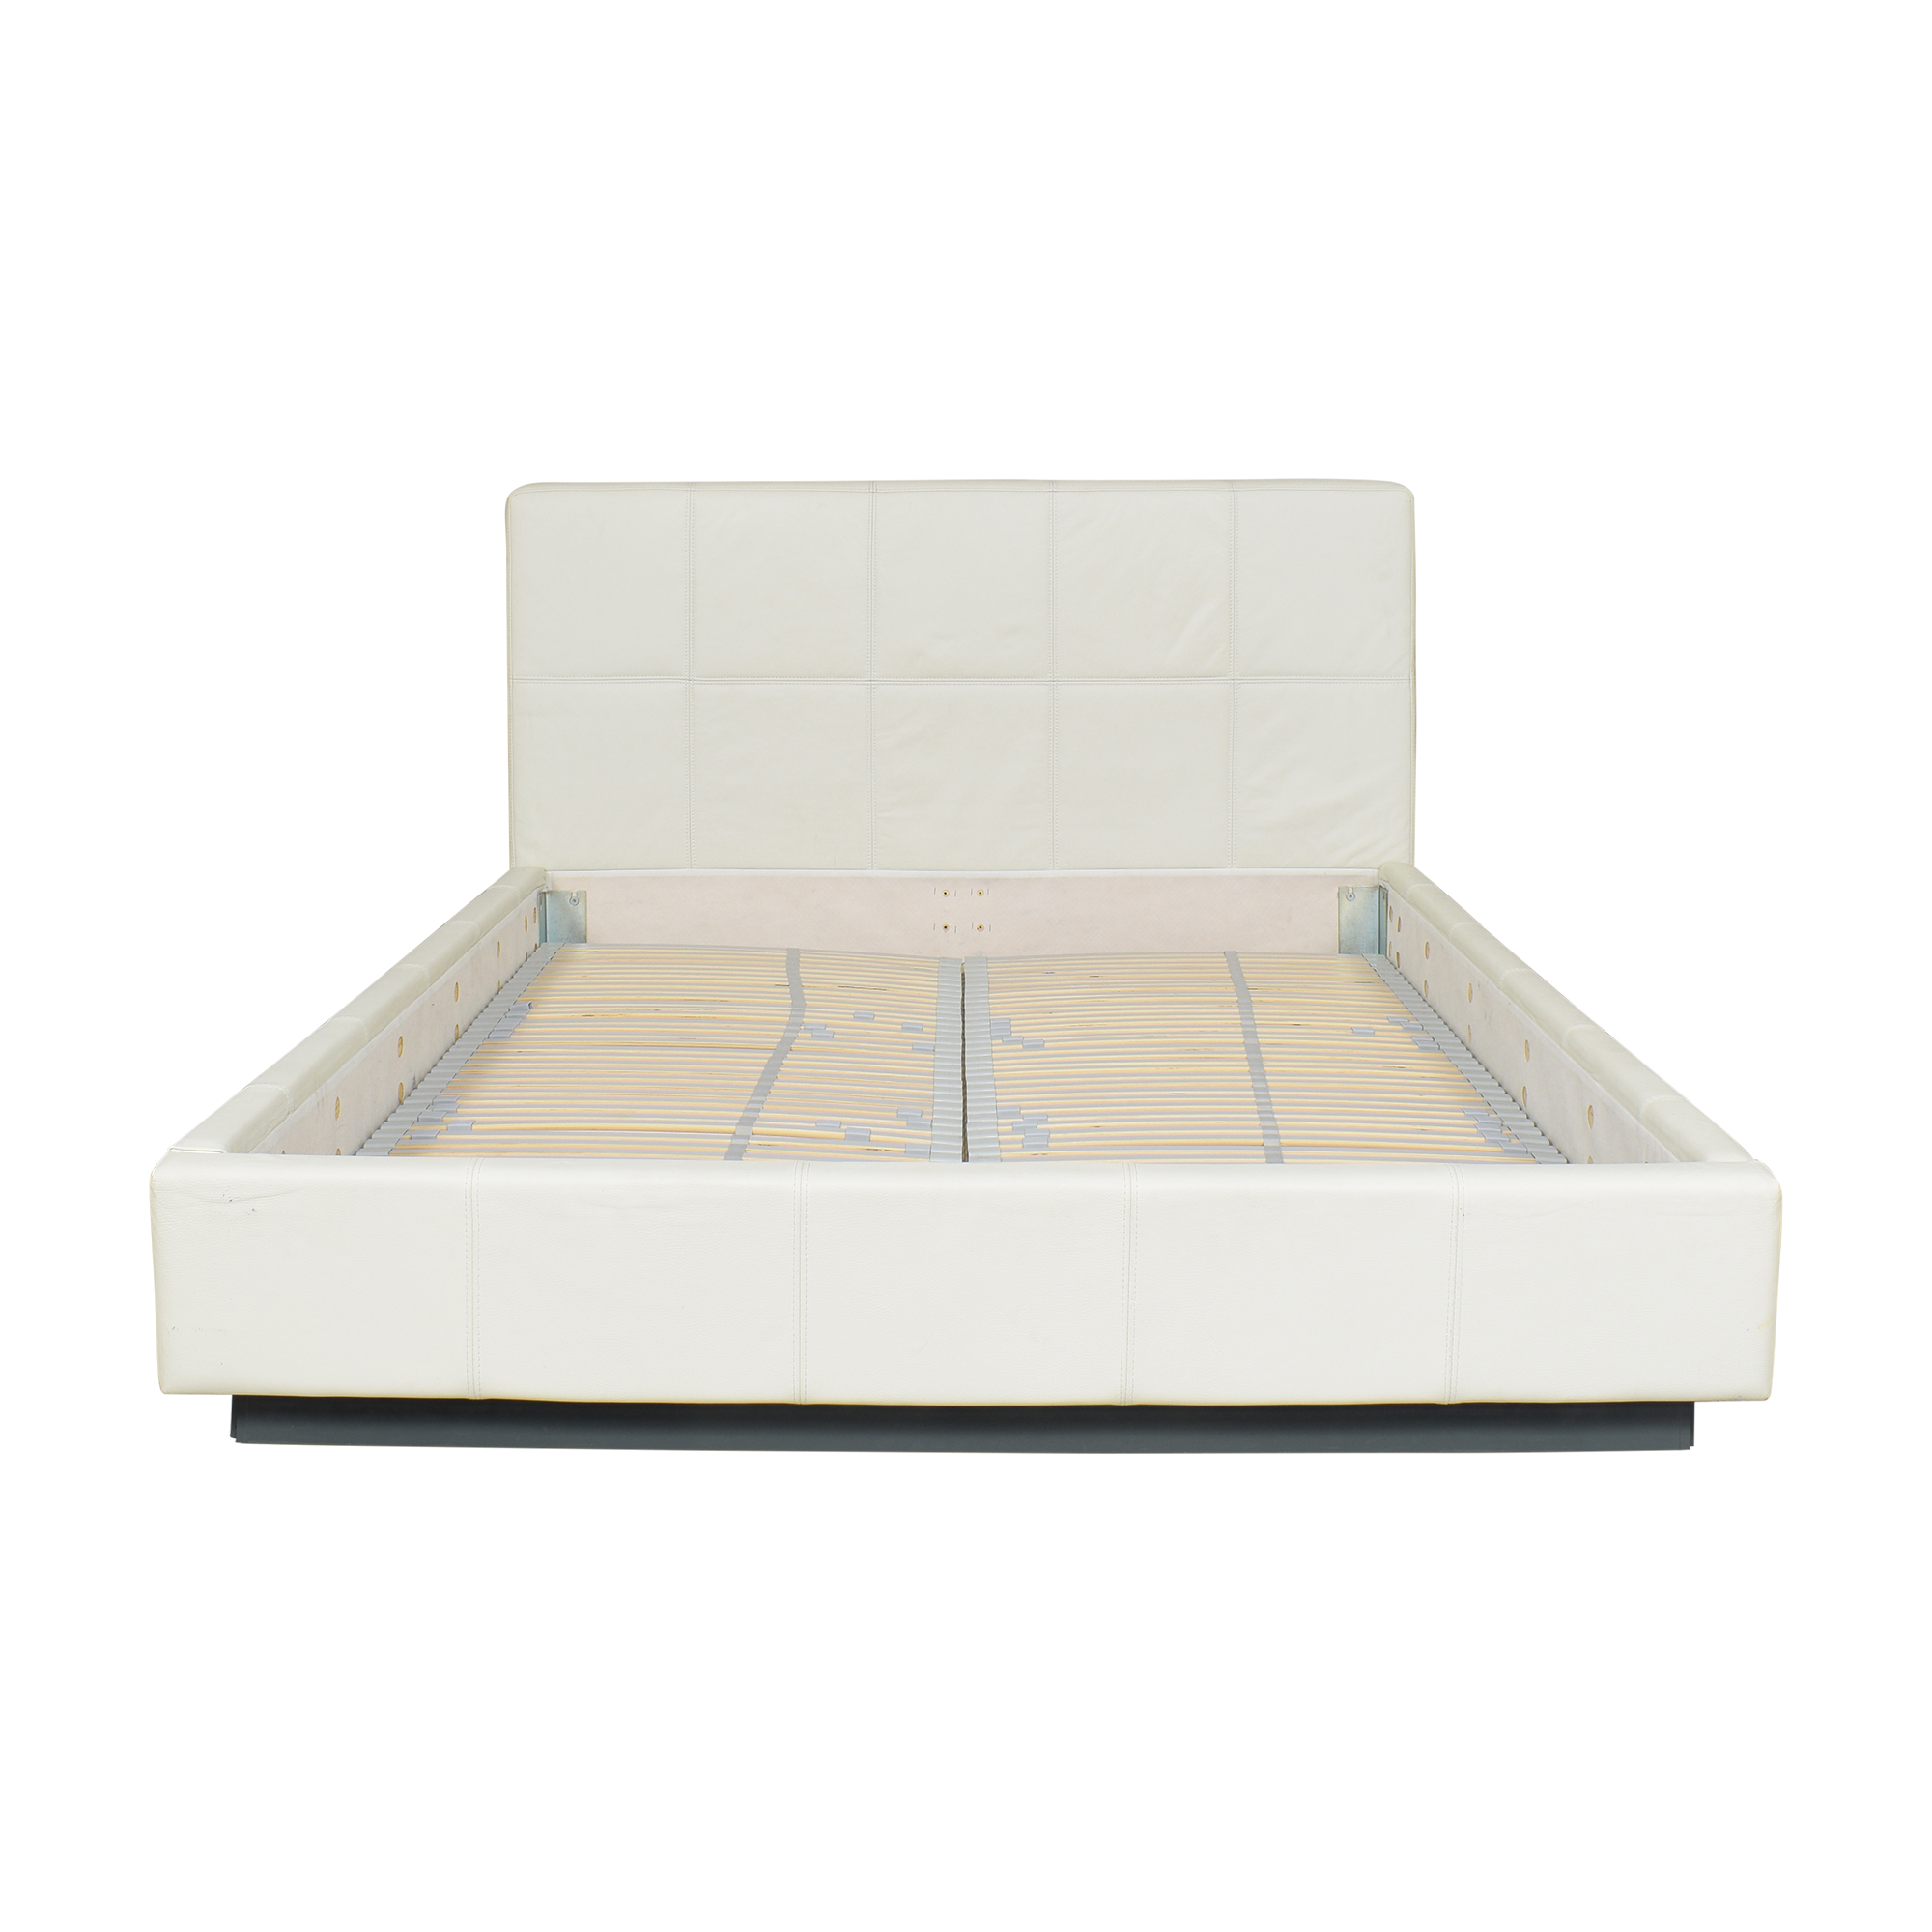 IKEA IKEA Upholstered Queen Bed used